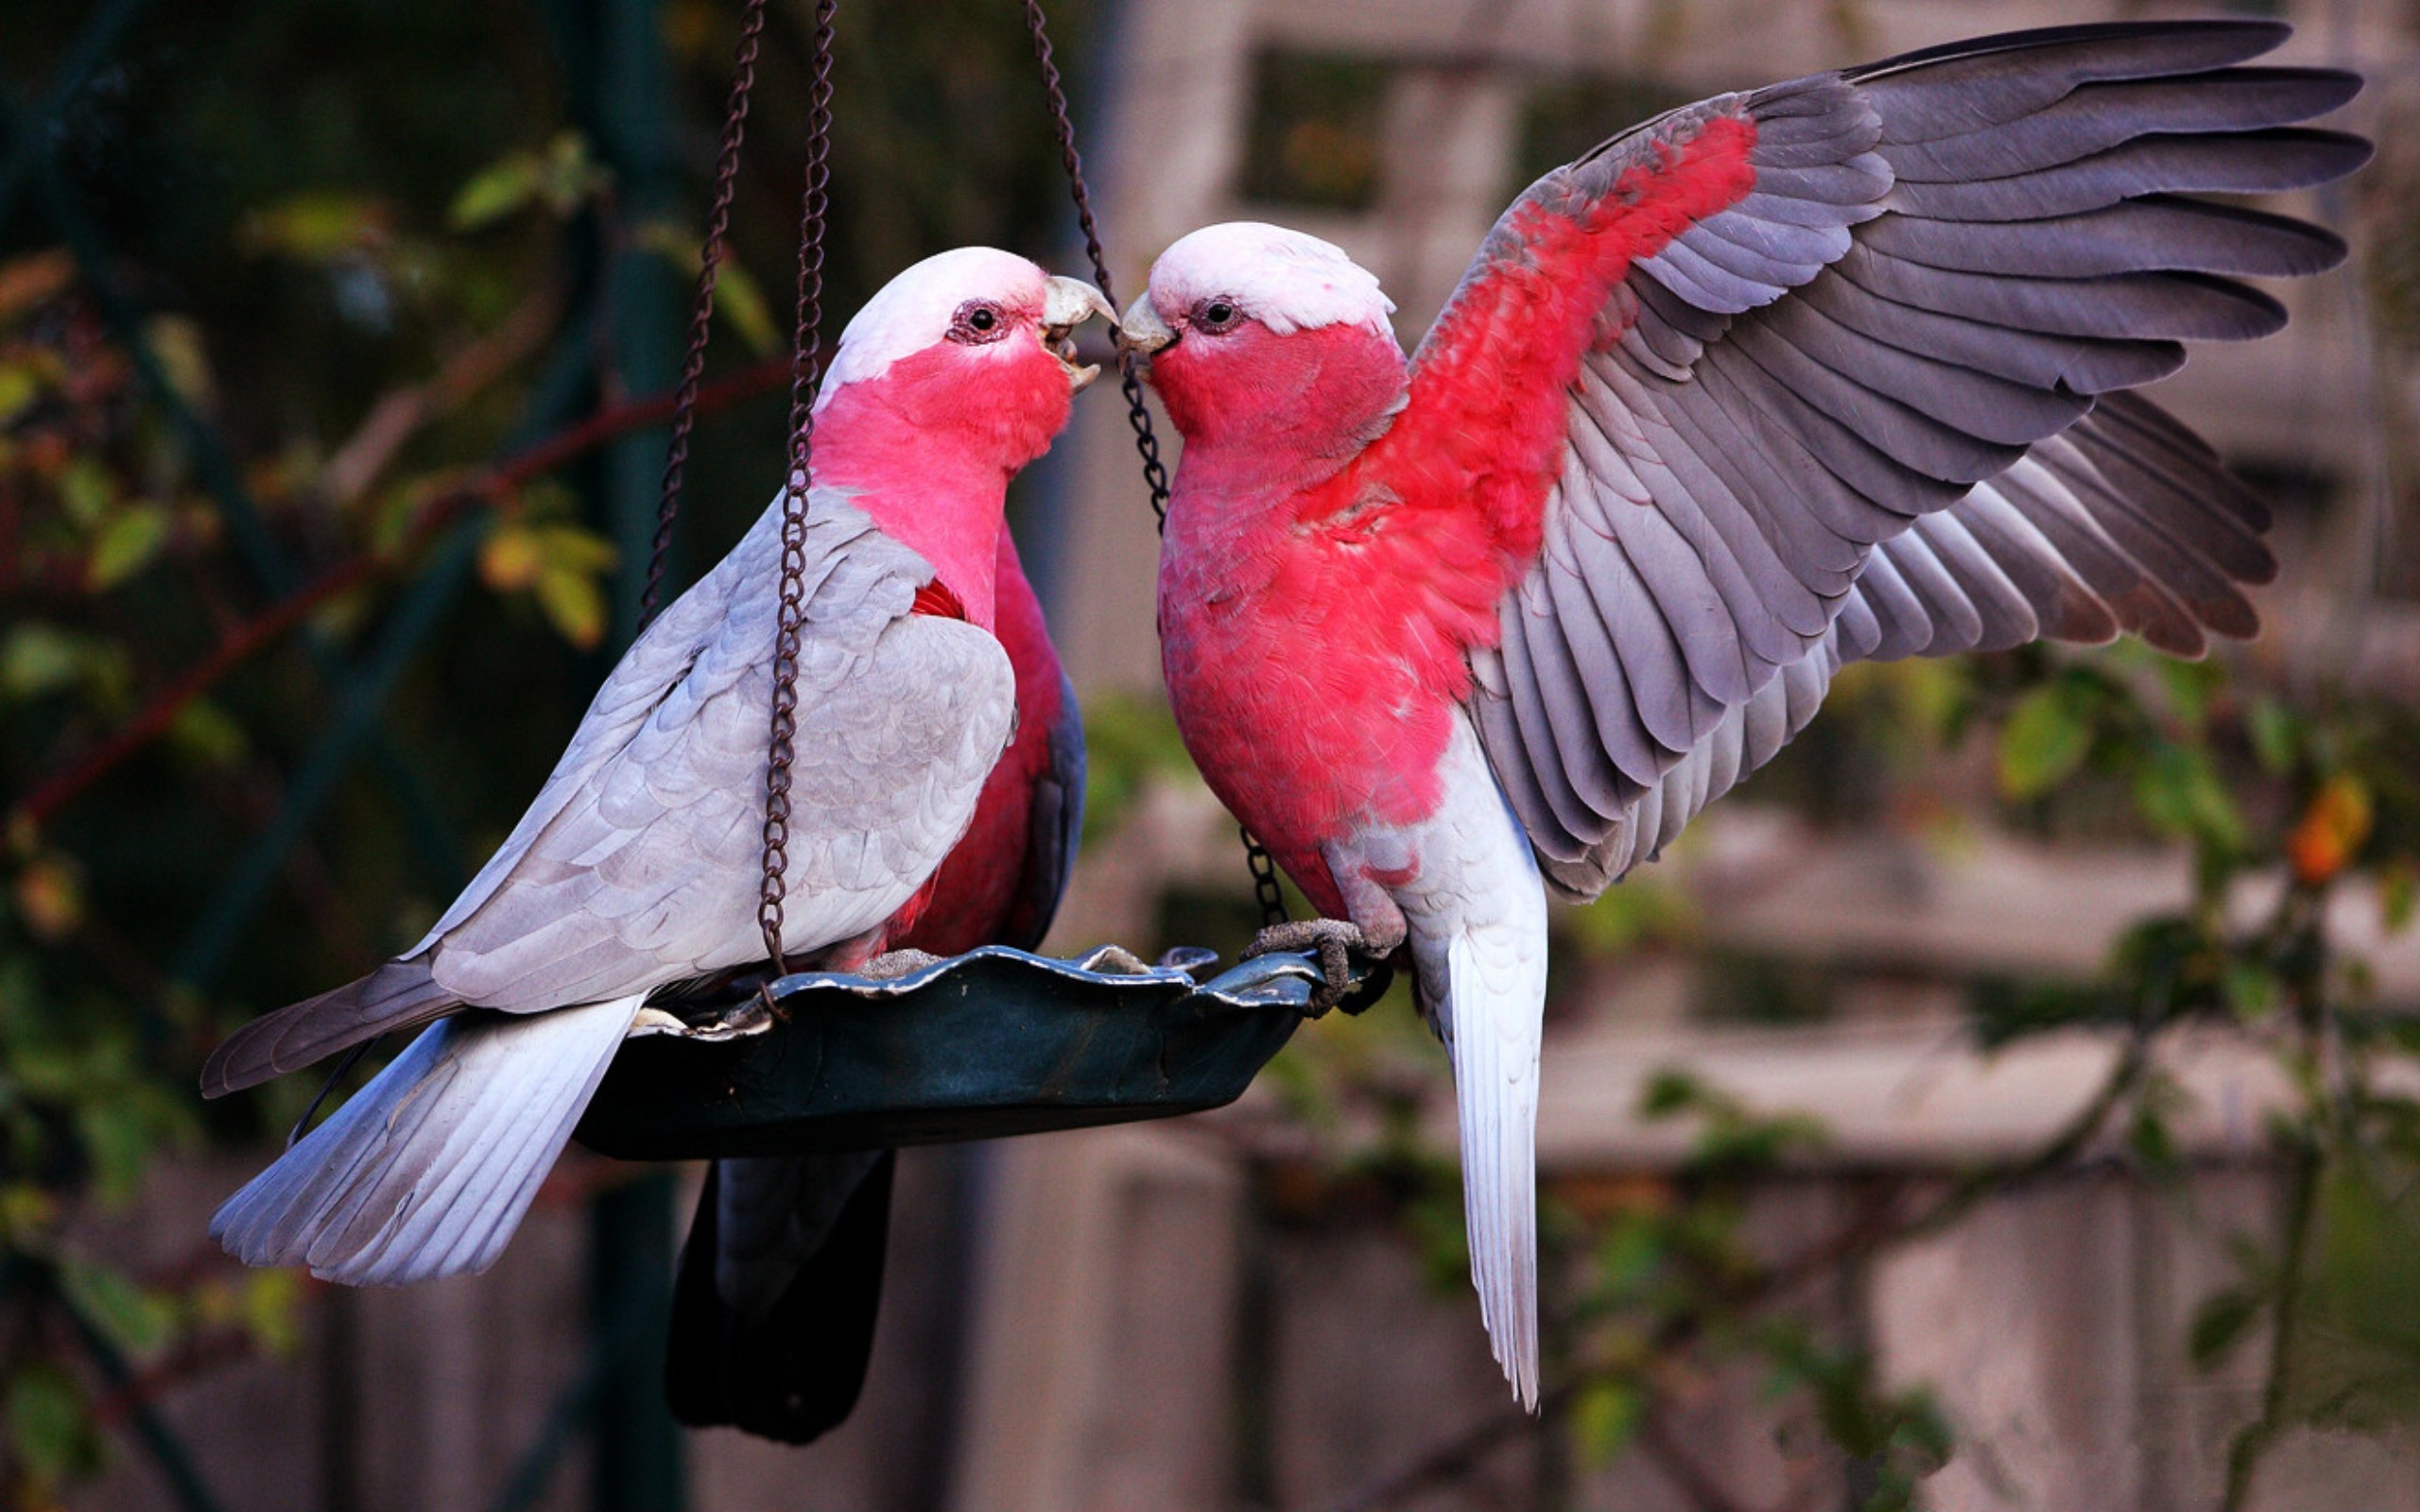 Love Birds Hd Wallpapers And Images Free Download: Love Birds Wallpapers ·① WallpaperTag